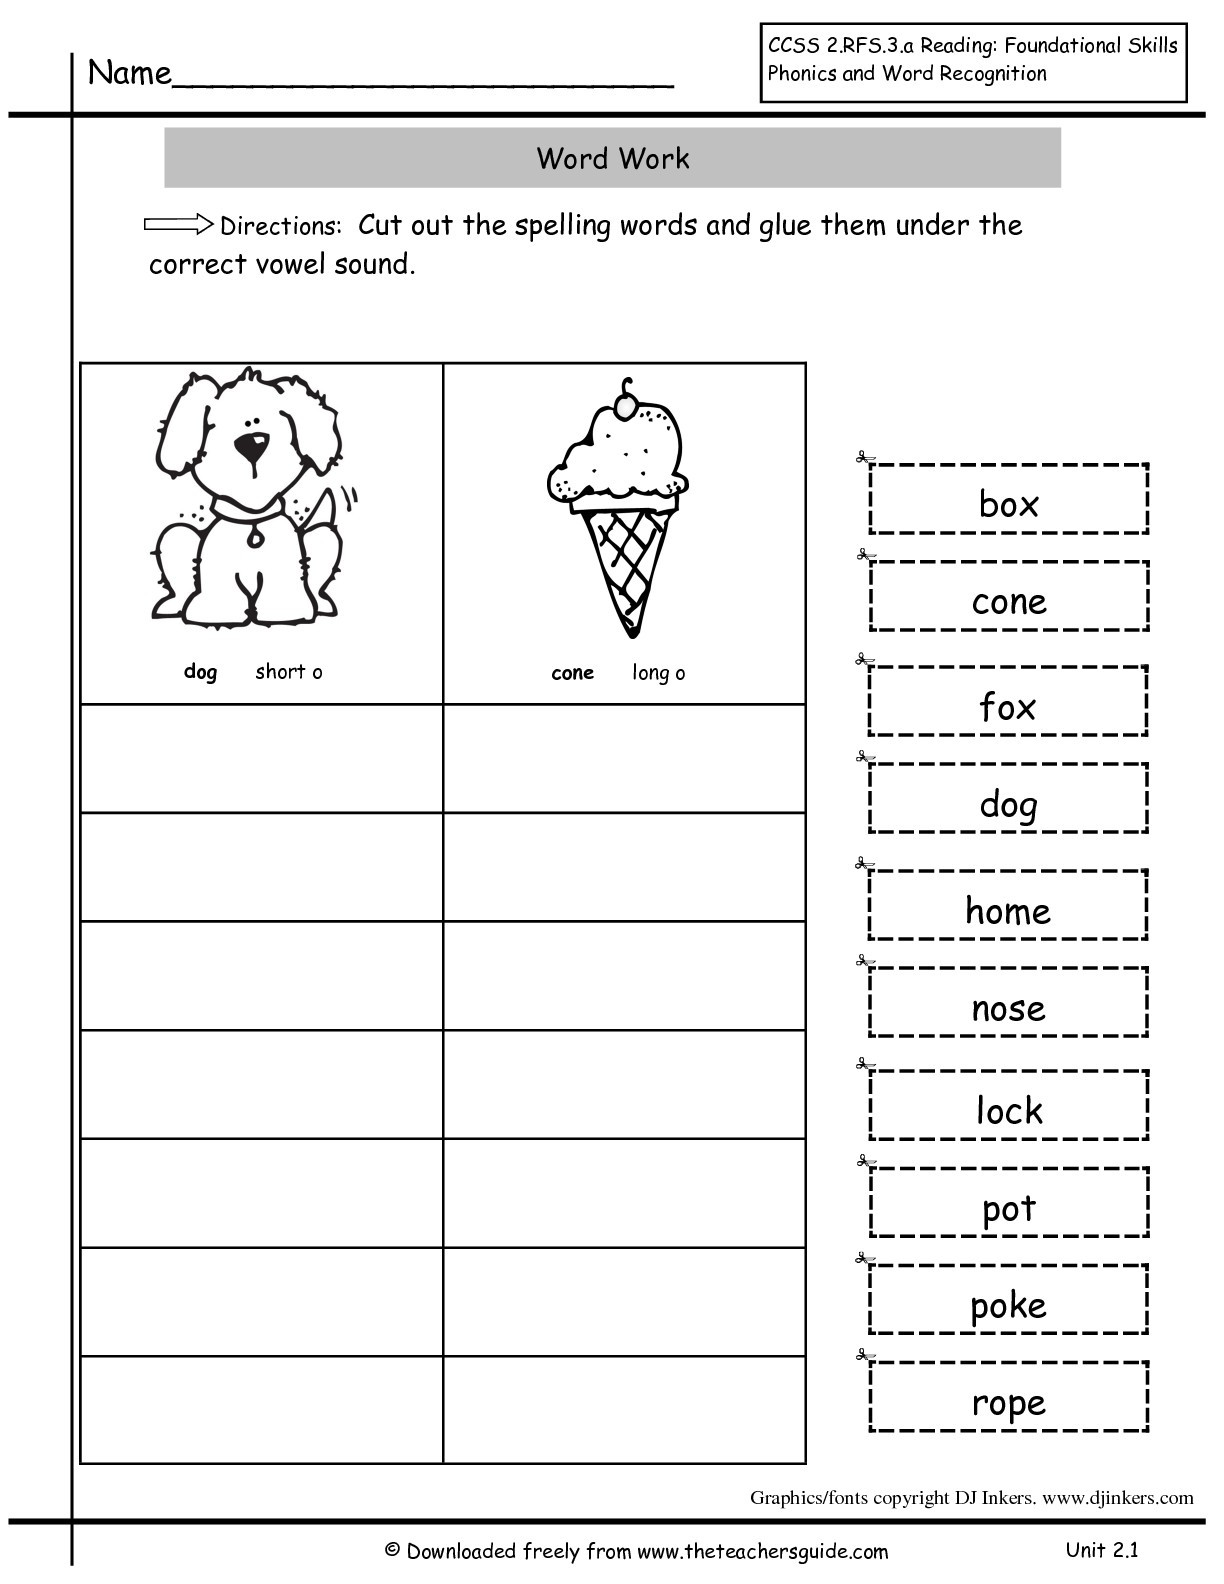 Inflectional Endings Worksheets 2nd Grade Wonders Second Grade Unit Two Week E Printouts